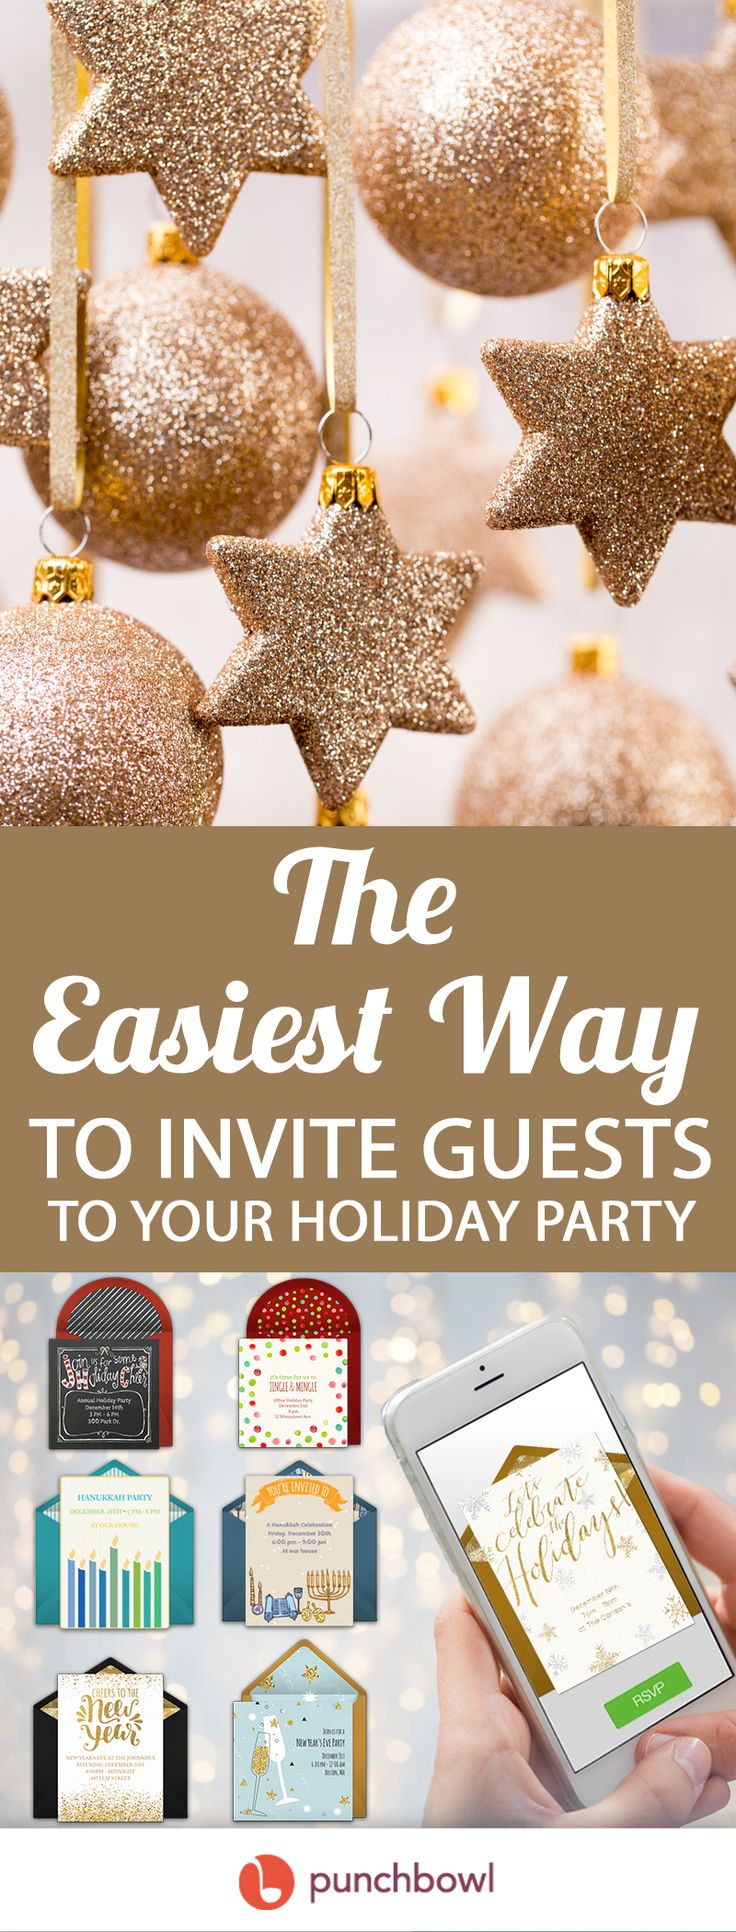 Paper invites are too formal, and emails are too casual. Get it just right with online invitations from Punchbowl. We've got everything you need for your Holiday party.   https://www.punchbowl.com/online-invitations/v/f/winter?filters=true?utm_source=Pinterest&utm_medium=137.5P